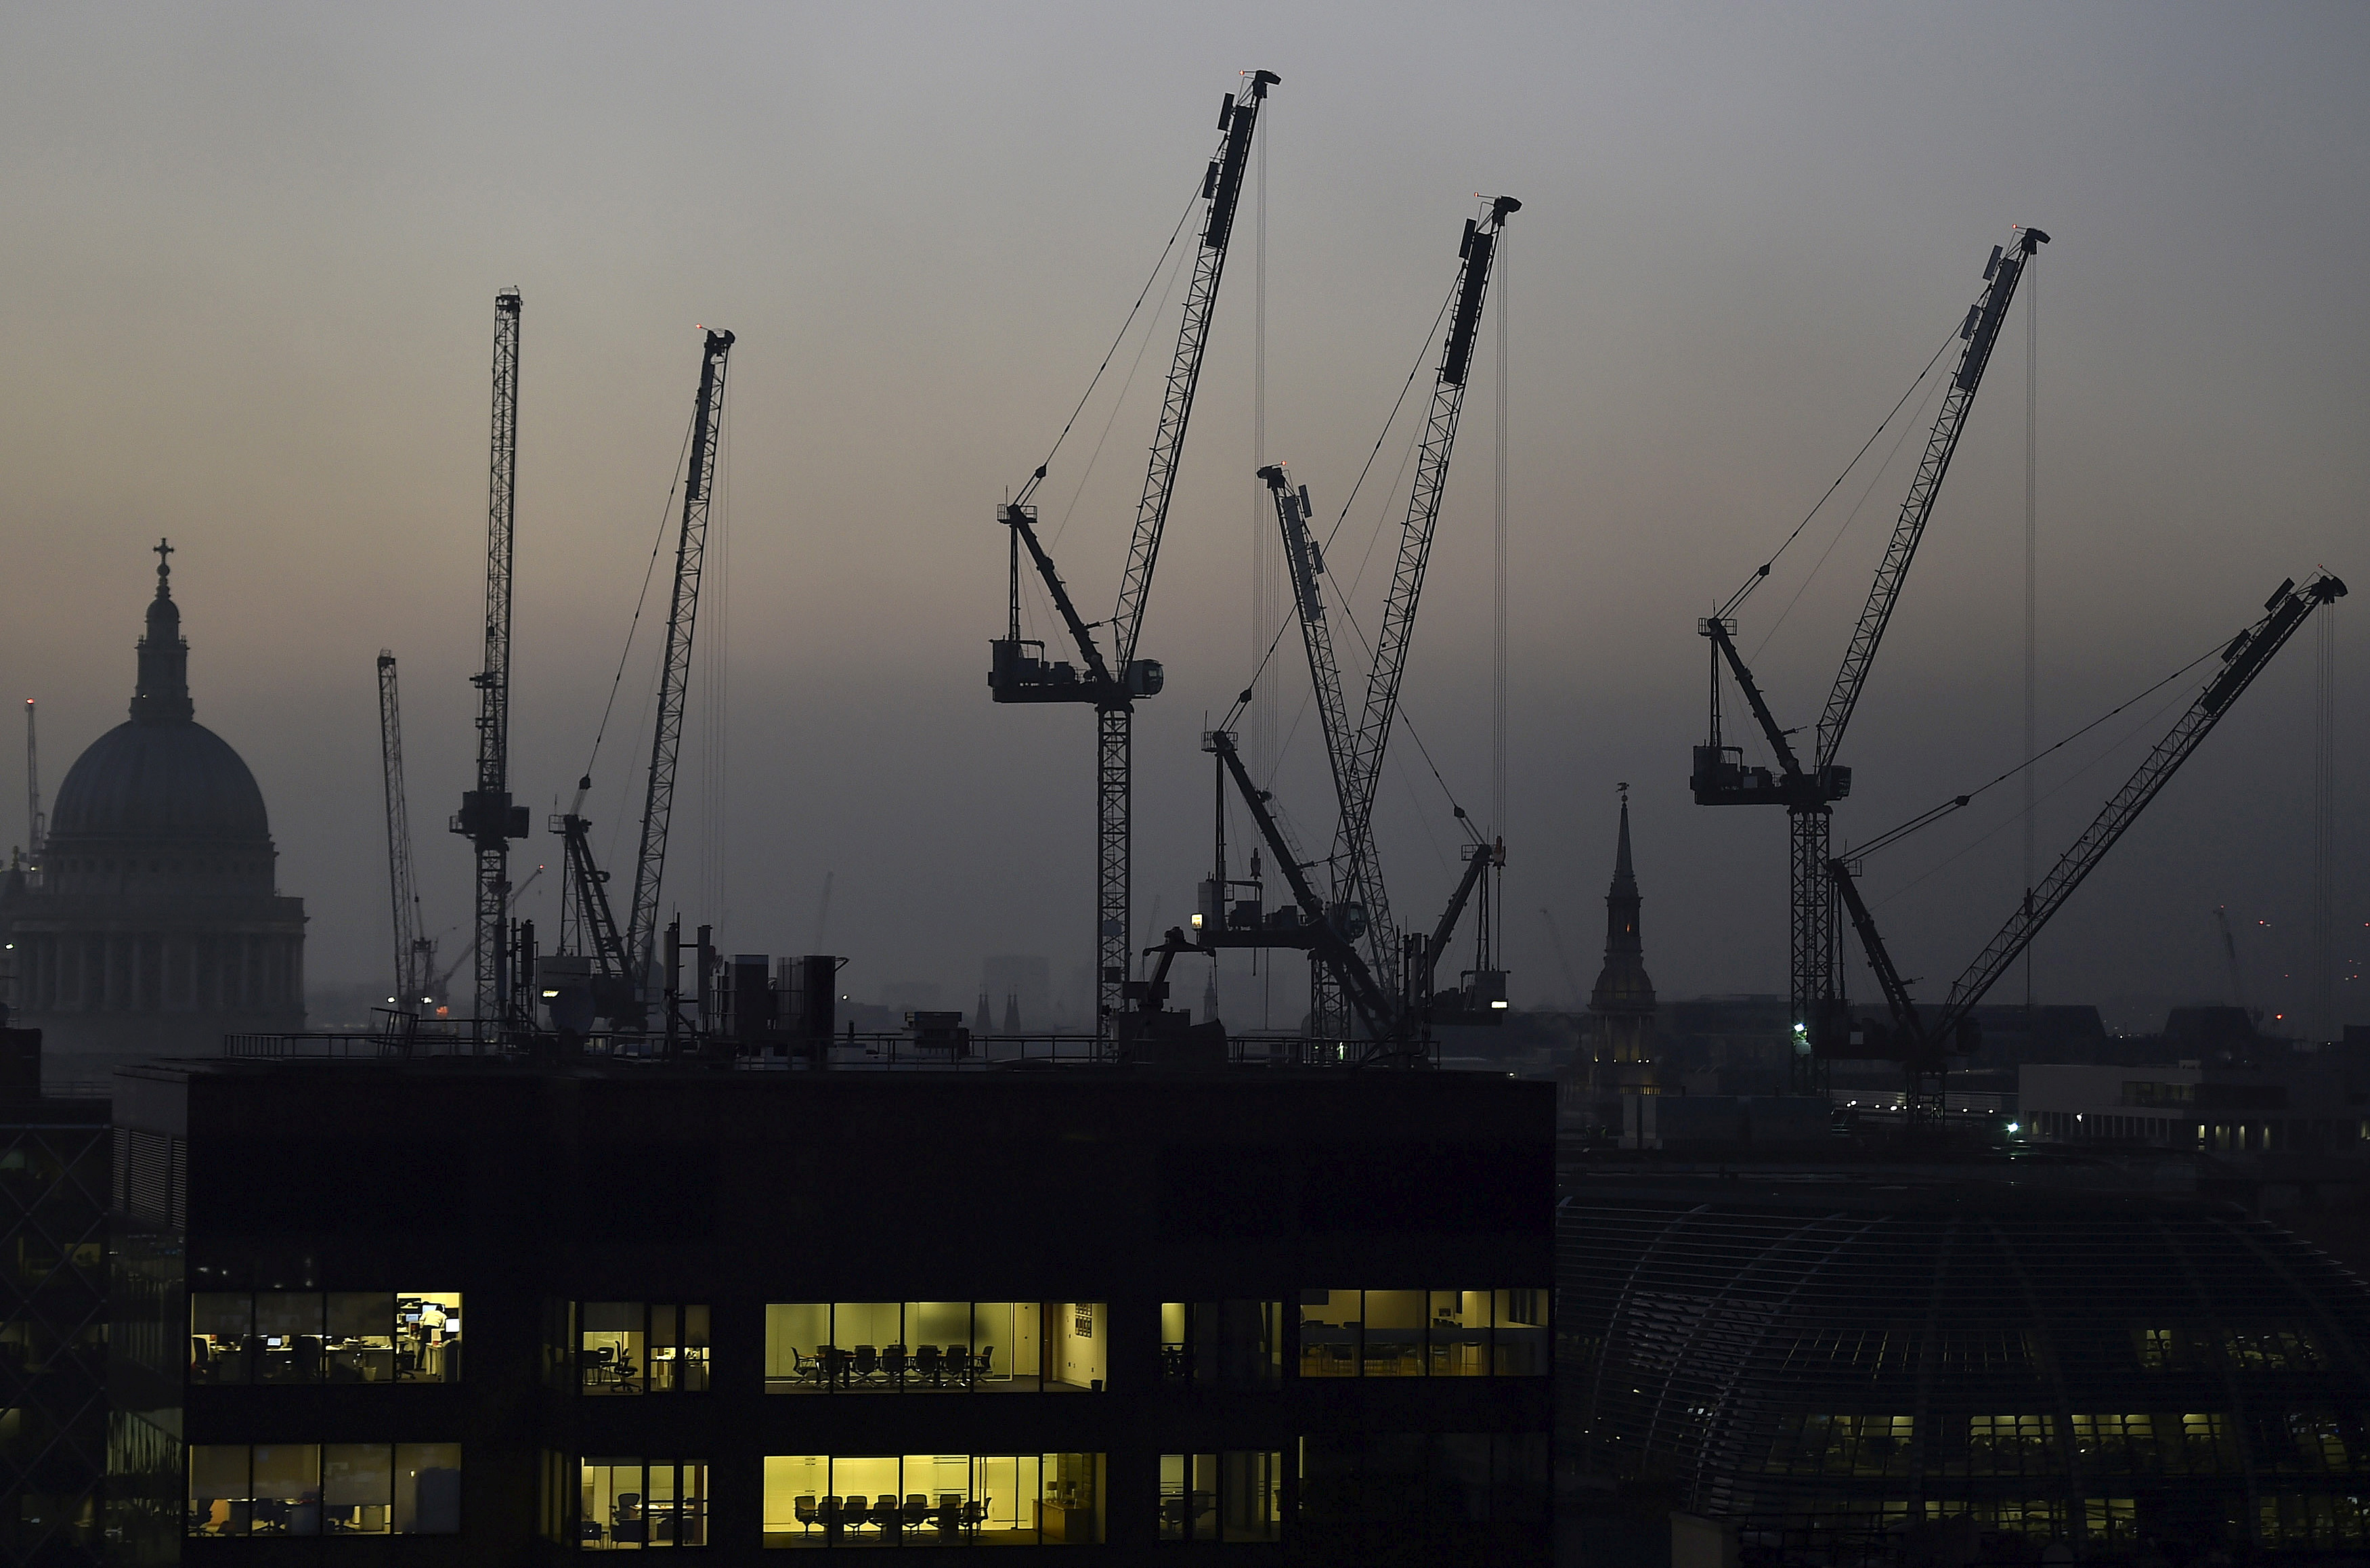 Prospect of no-deal Brexit is damaging business confidence, says CBI business lobby